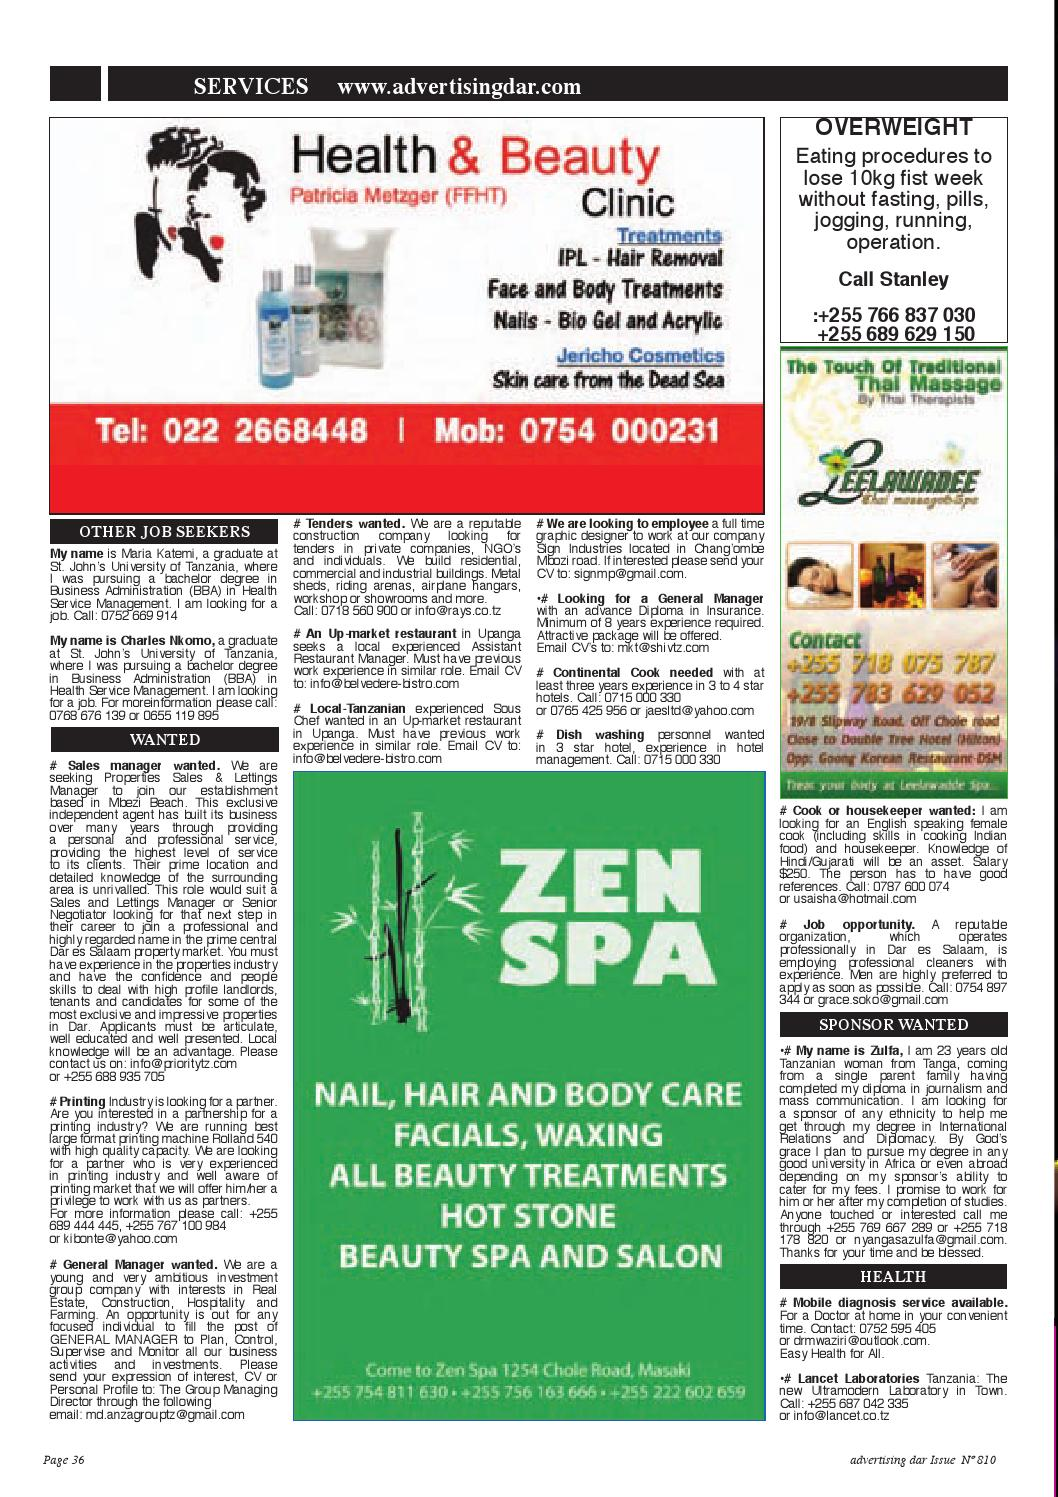 Advertising Dar Issue Nº 810 - 6th March 2015 by Advertising